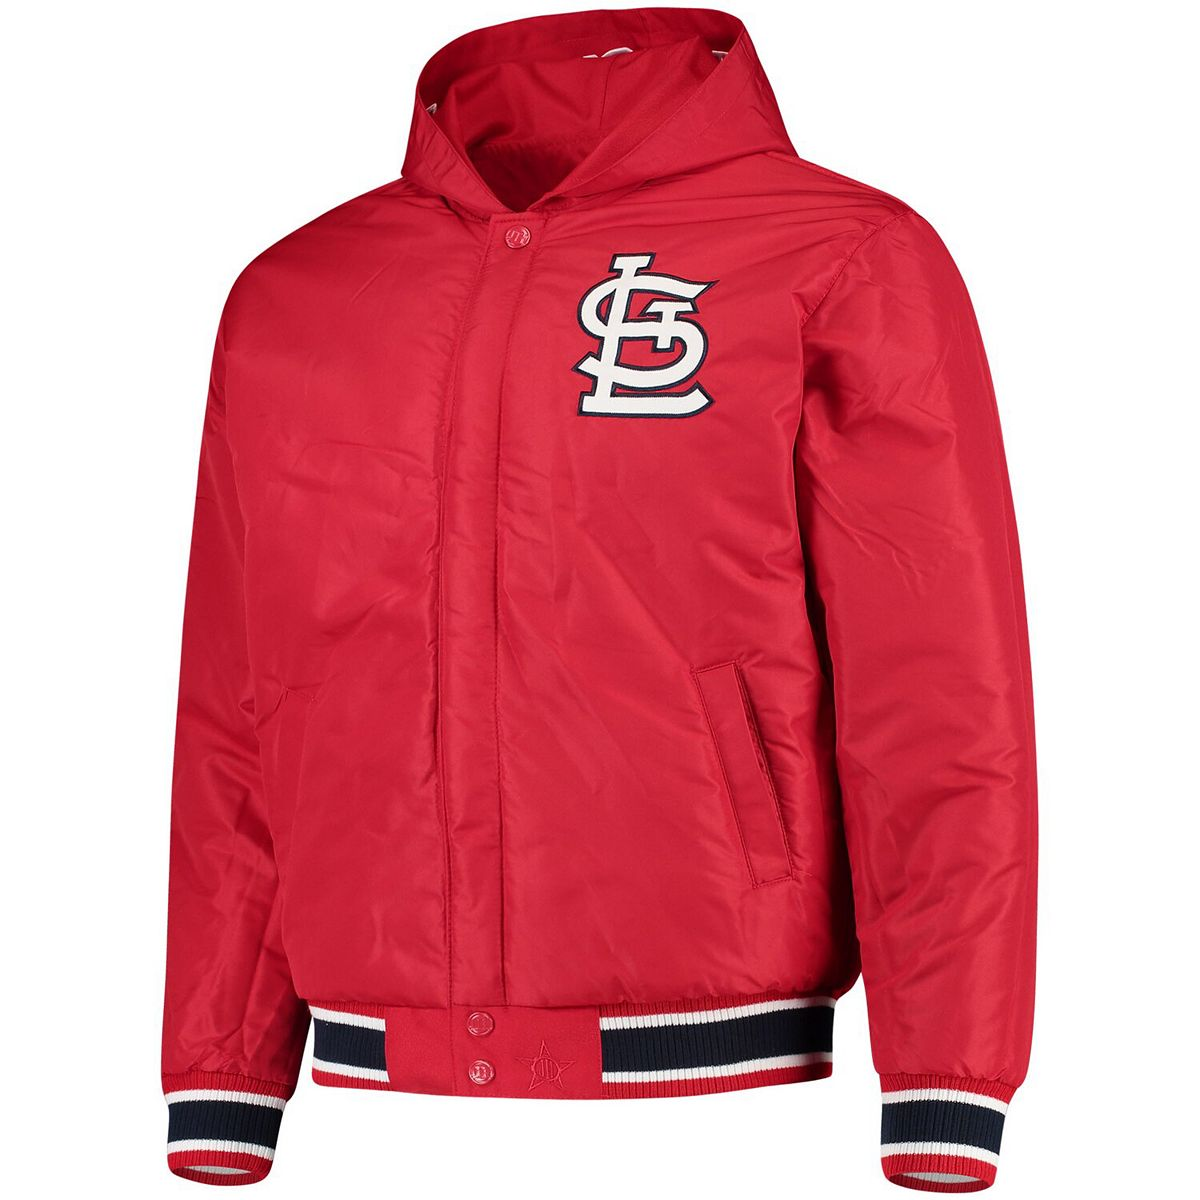 Men's JH Design Red St. Louis Cardinals Reversible Poly-Twill Hooded Jacket 9nElY